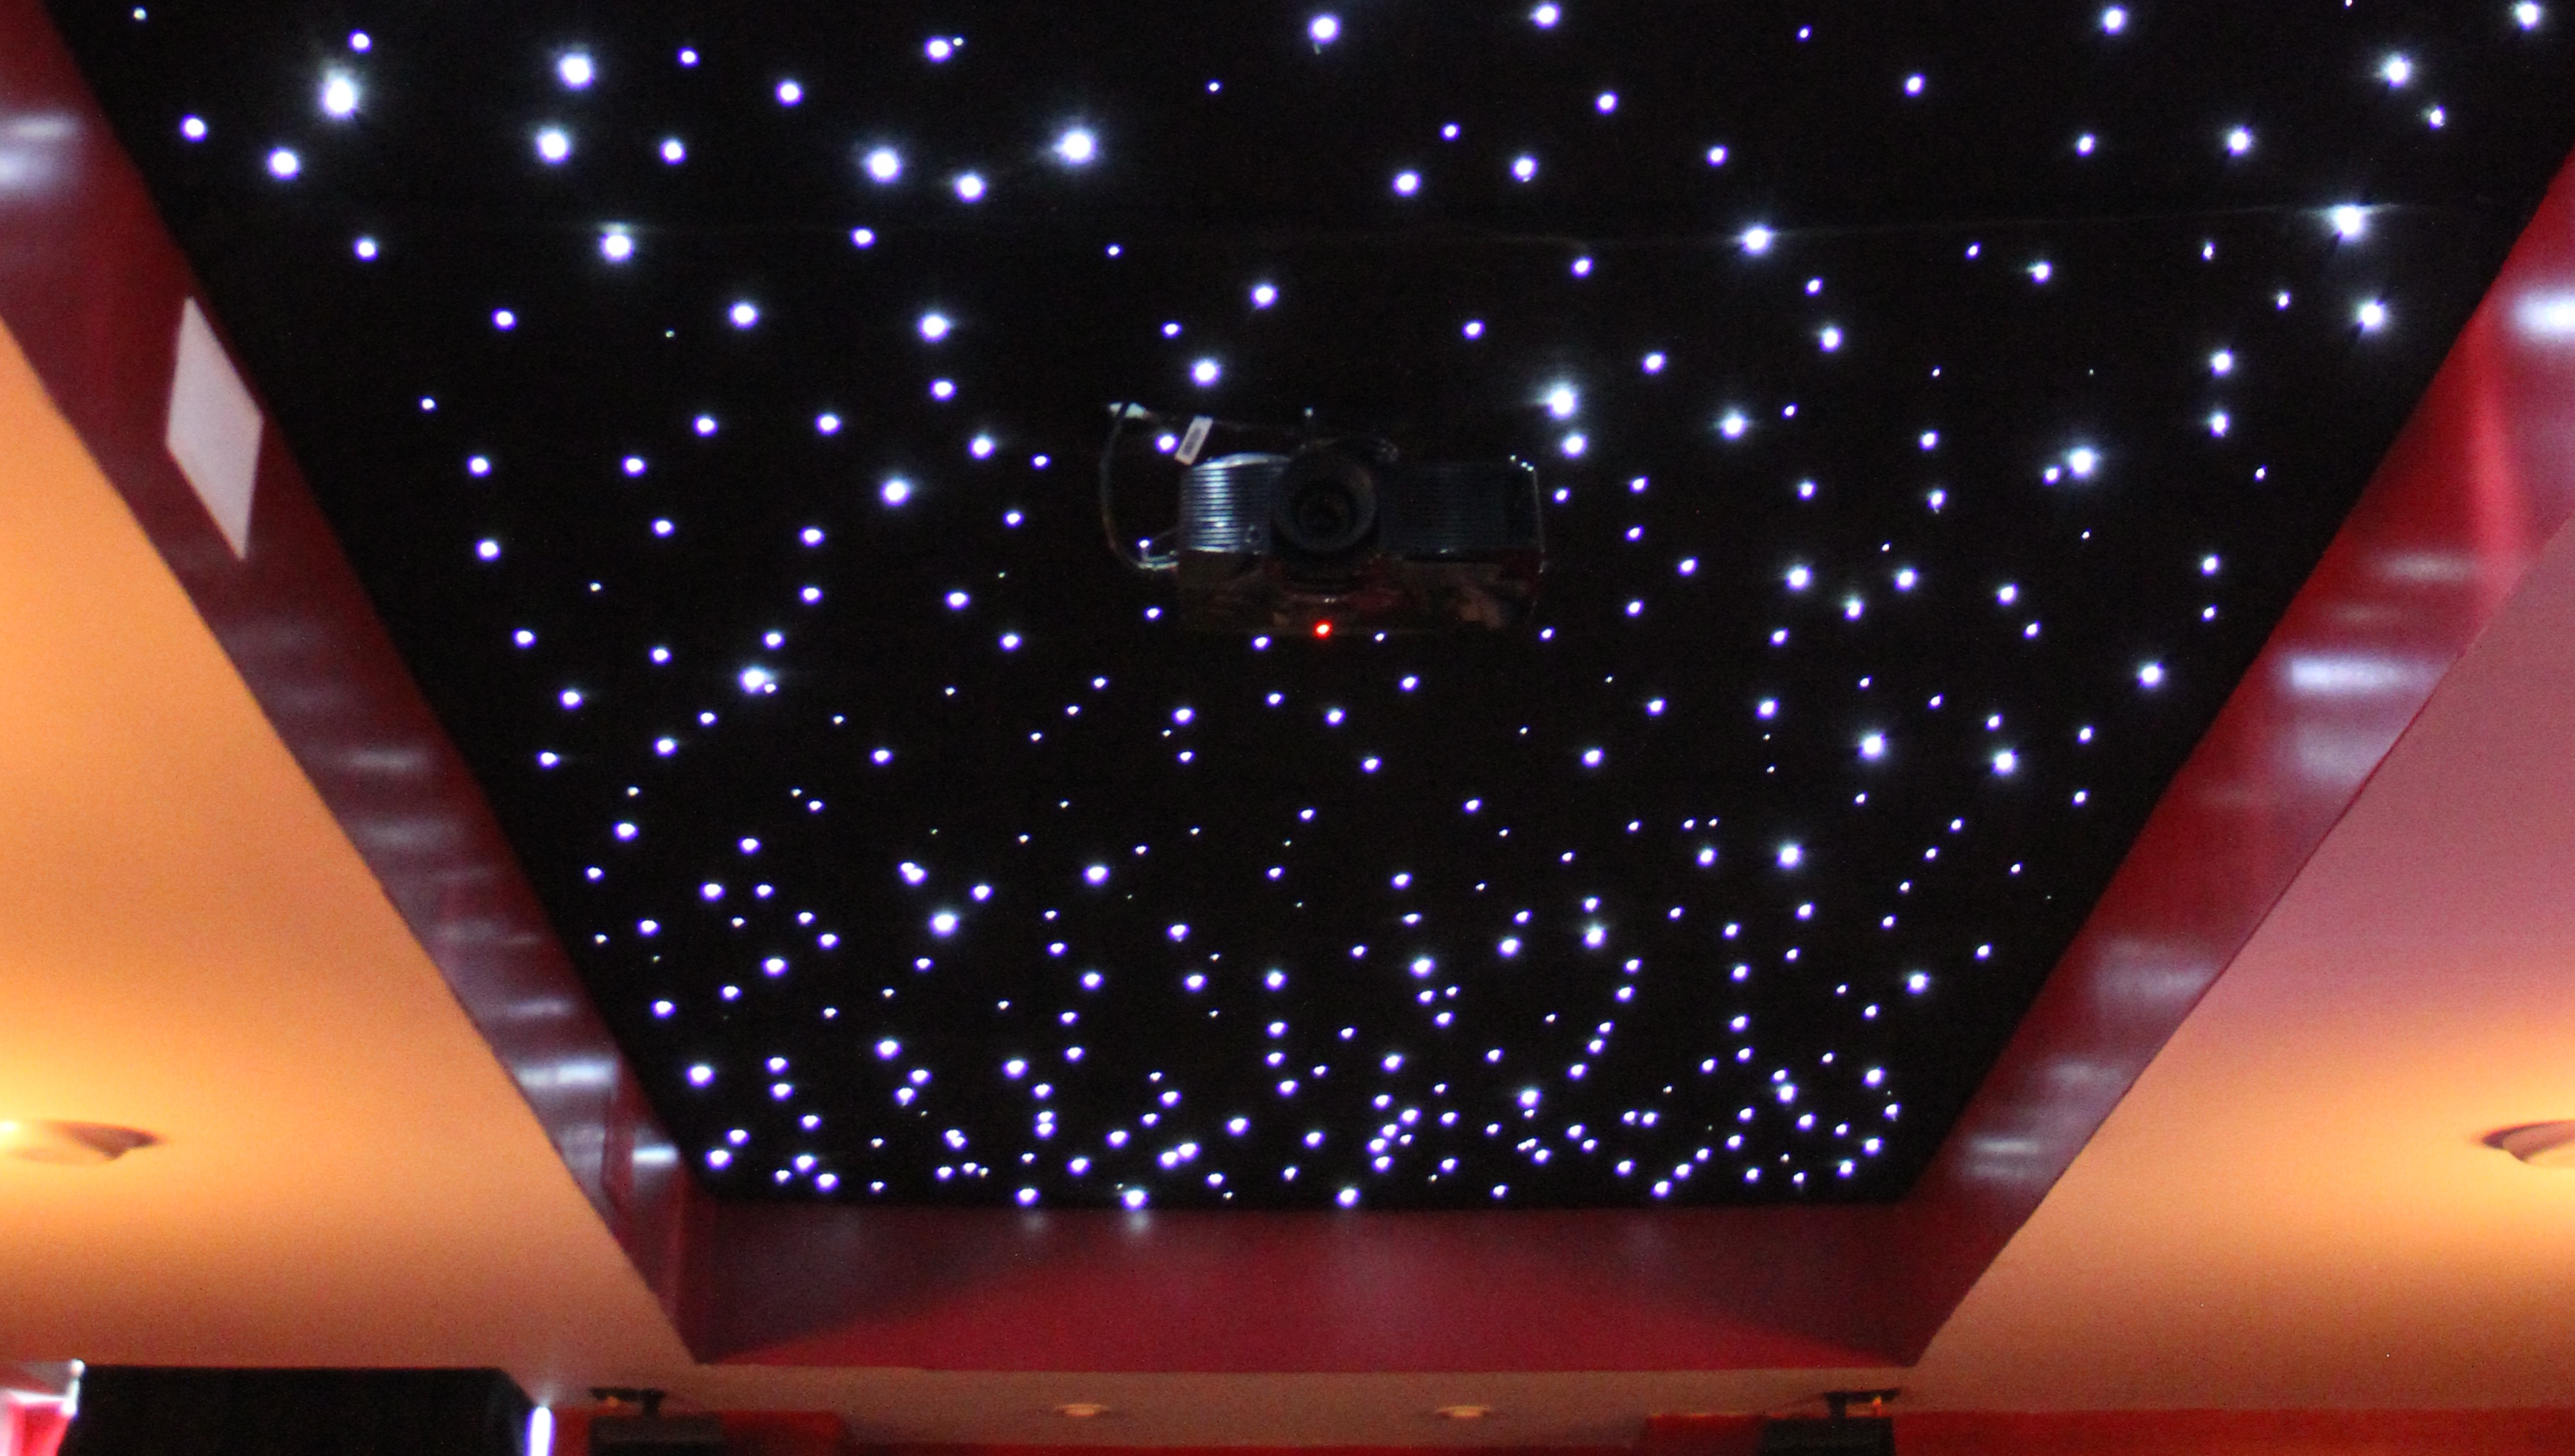 DIY Fiber Optic Star Ceiling. For My Wife And I, A Dream Of Ours Has Always  Been To Have A Home Theater To Watch Movies With Our Family.